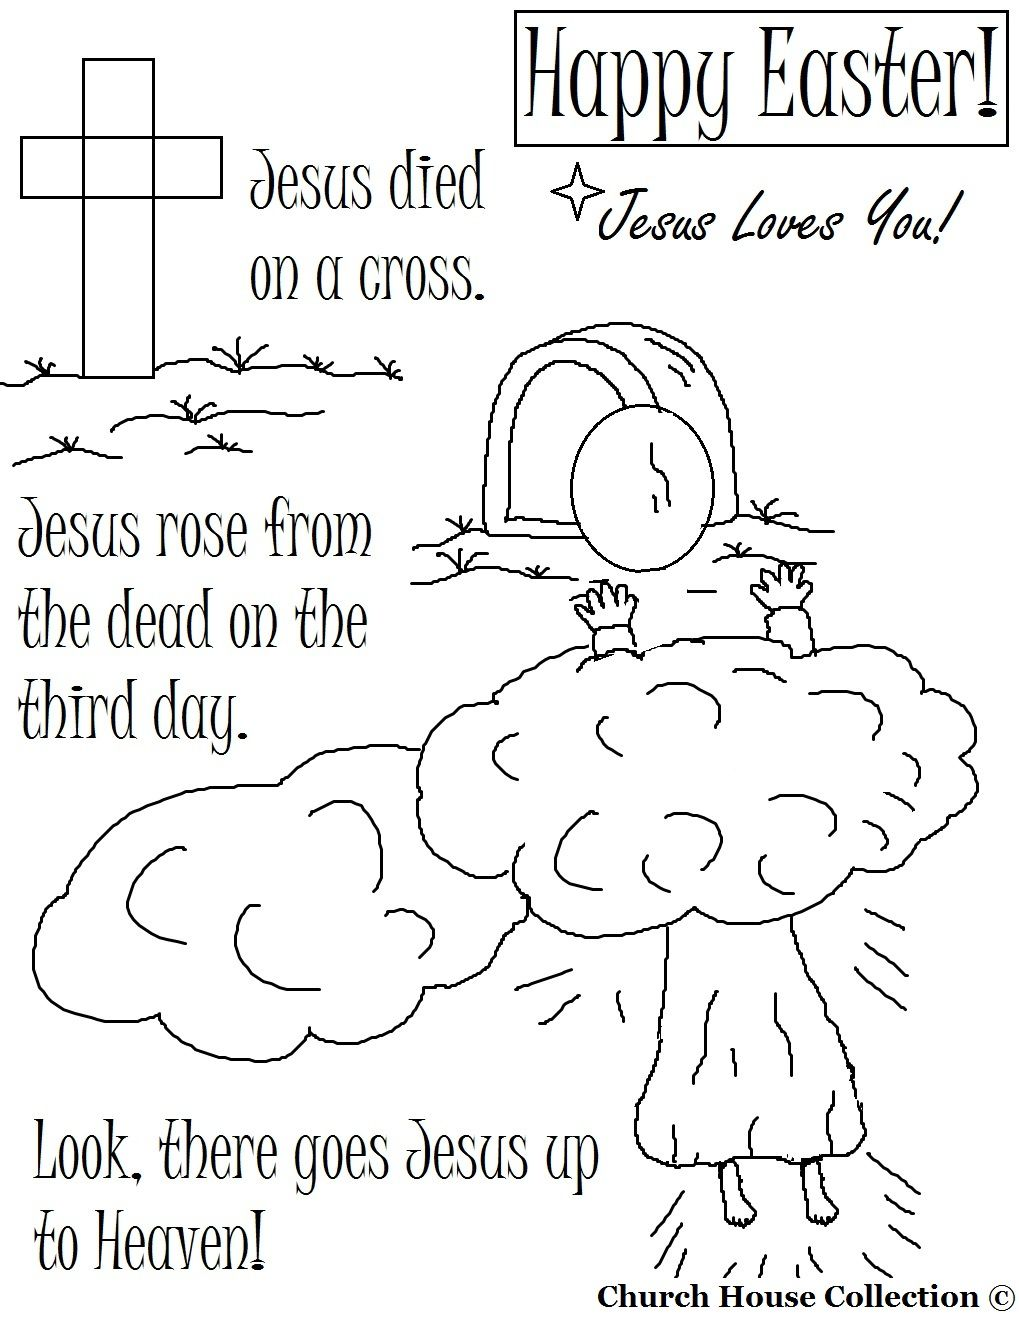 Lujoso Coloring Pages Resurrection Jesucristo Friso - Enmarcado Para ...